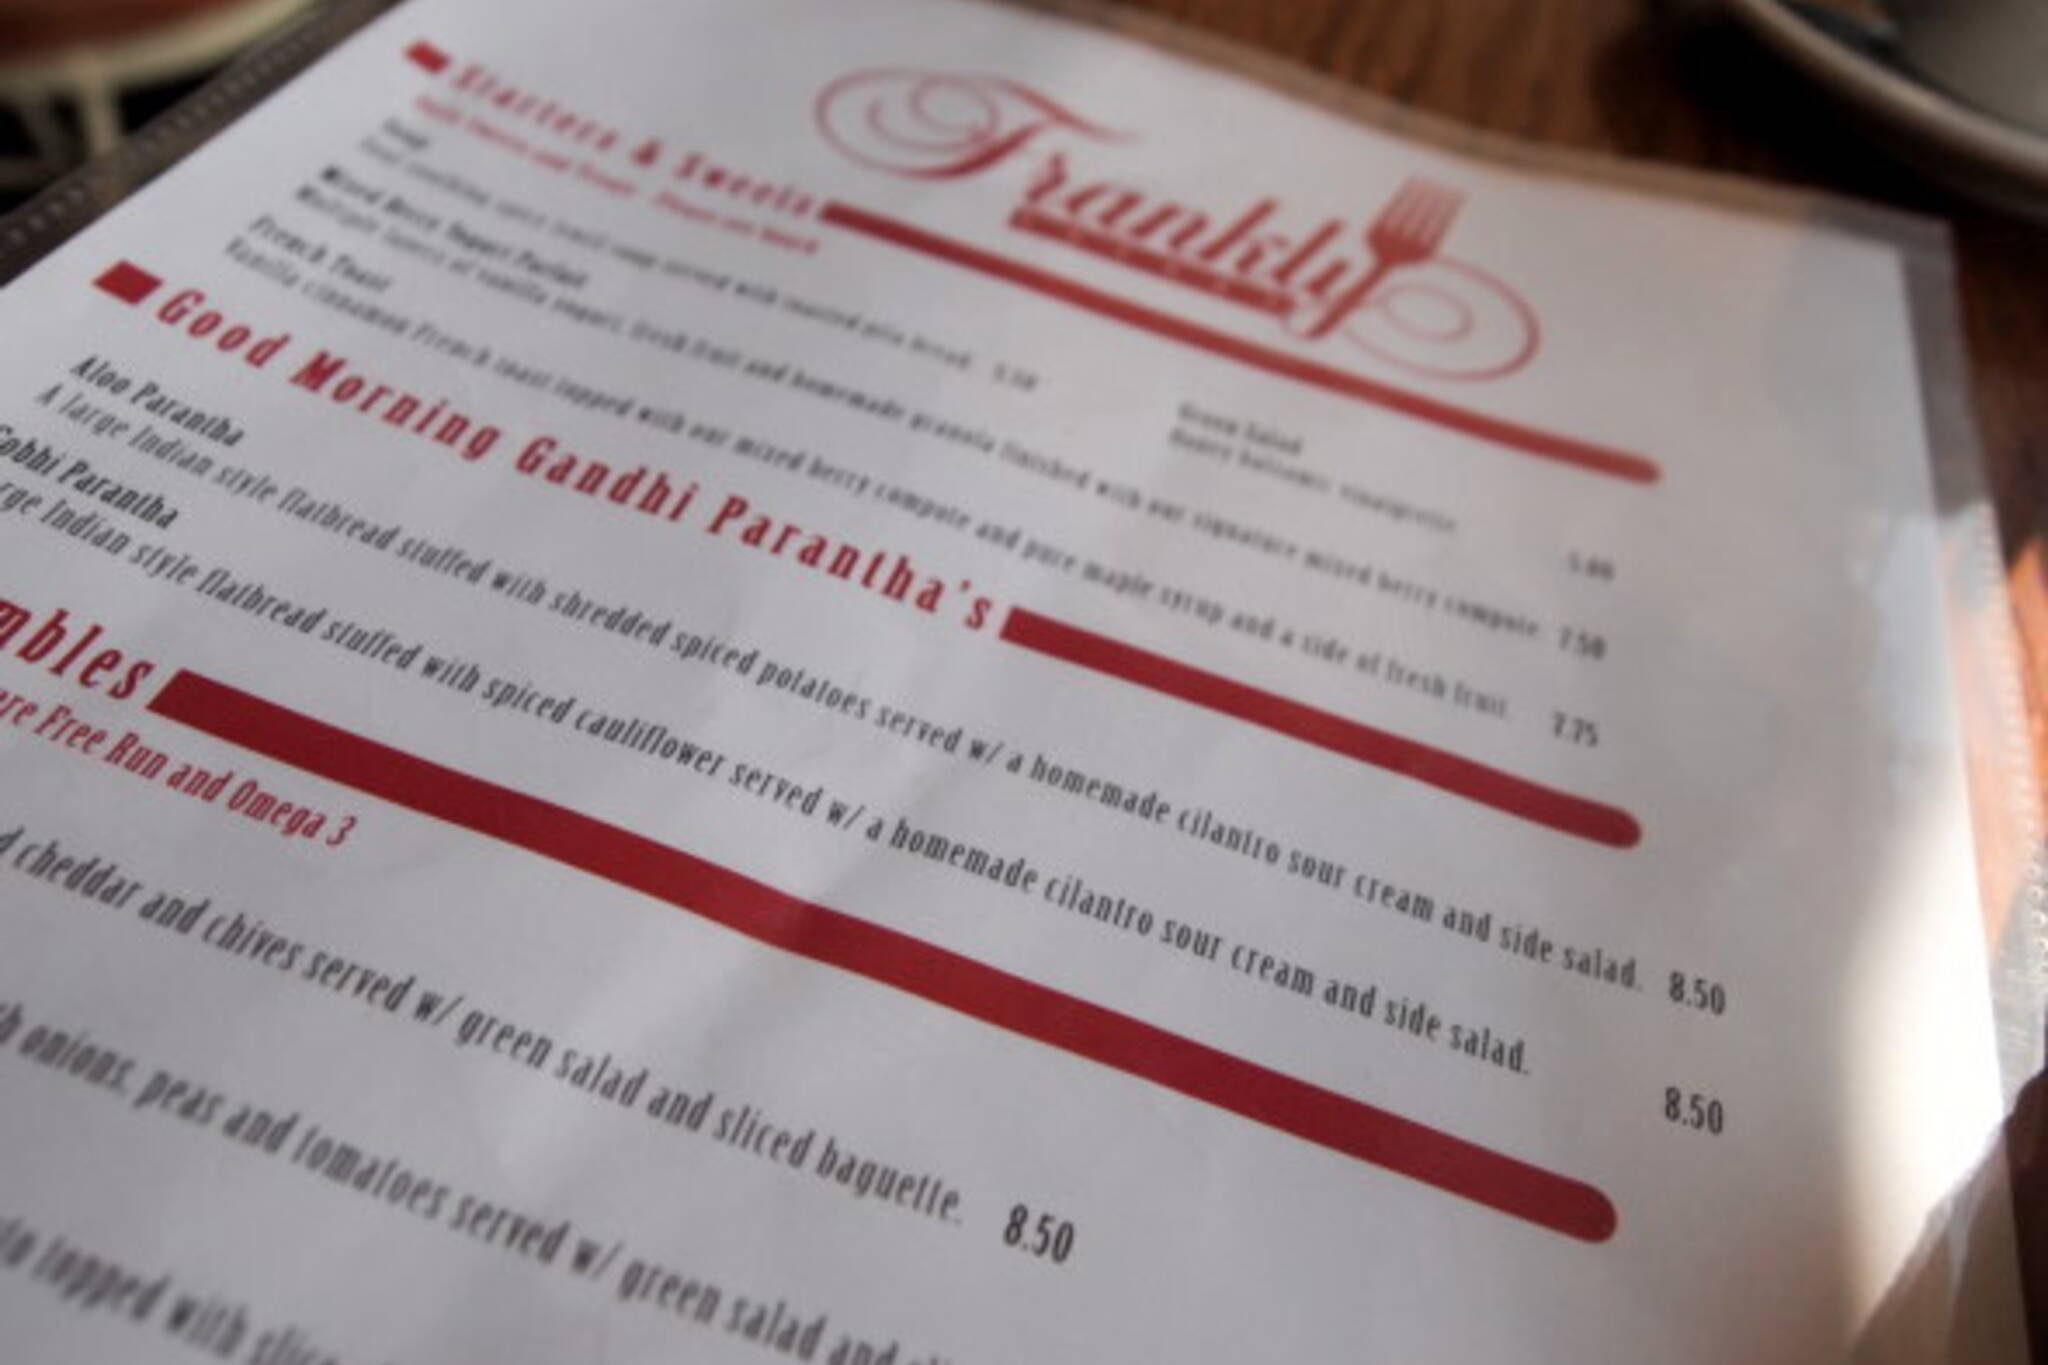 Frankly Eatery